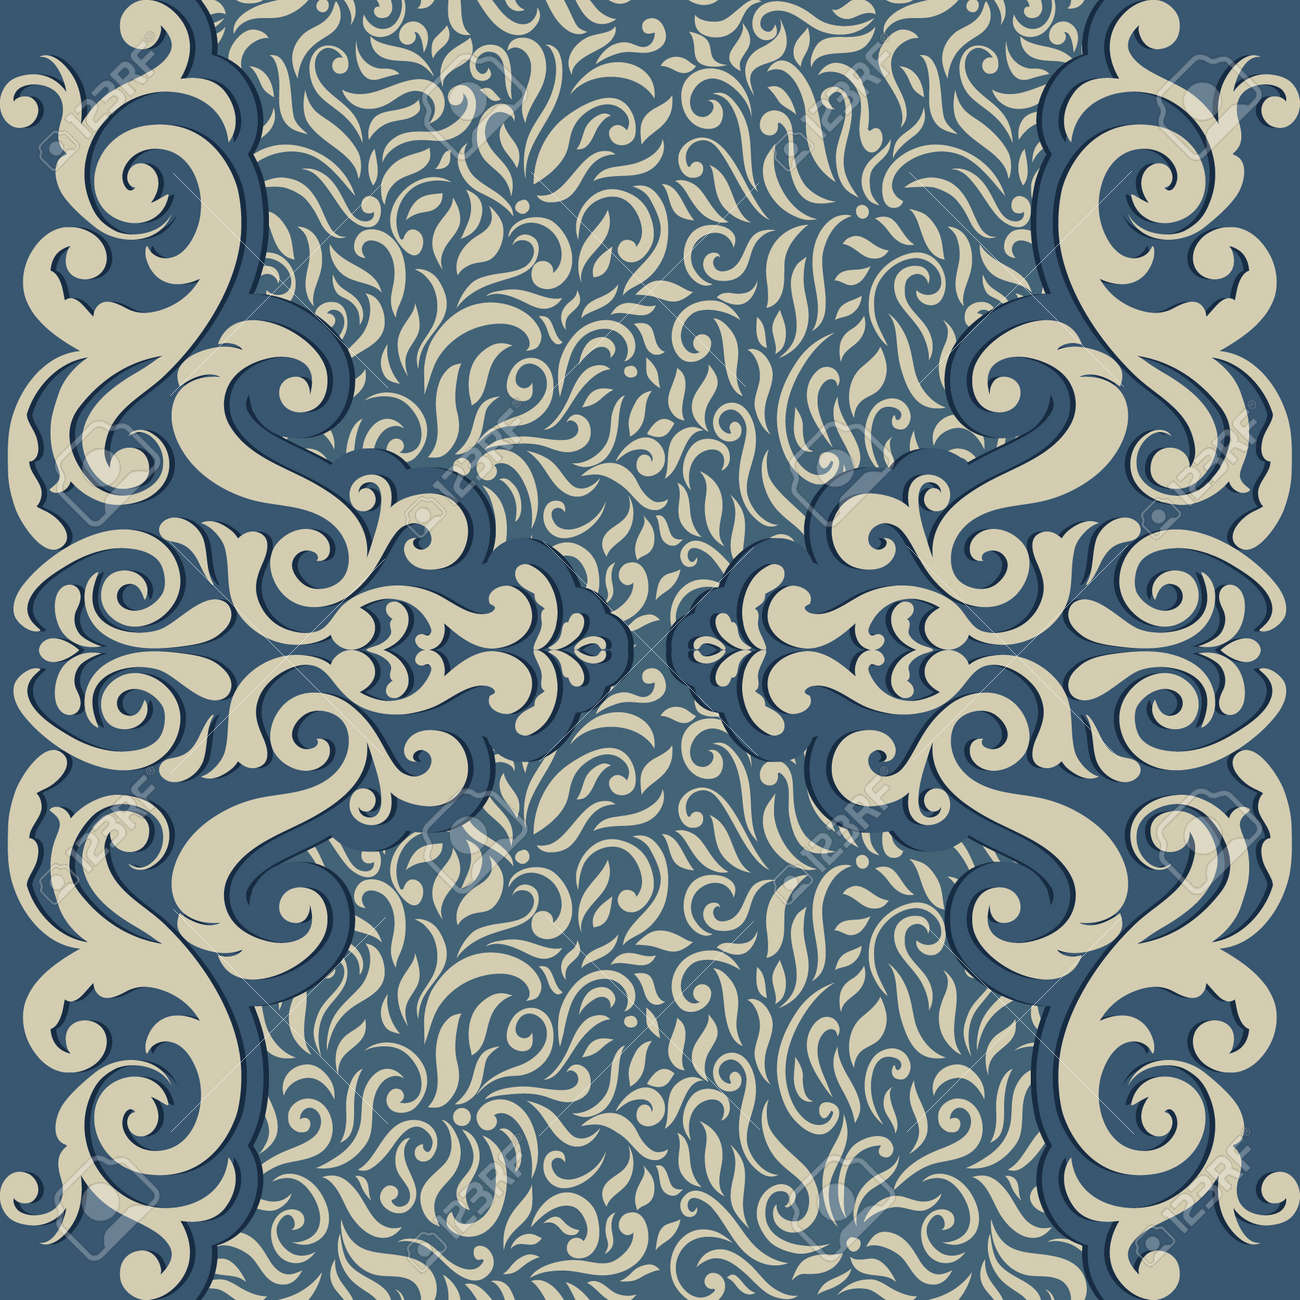 Vintage Card With Seamless Abstract Floral Wallpaper Can Be